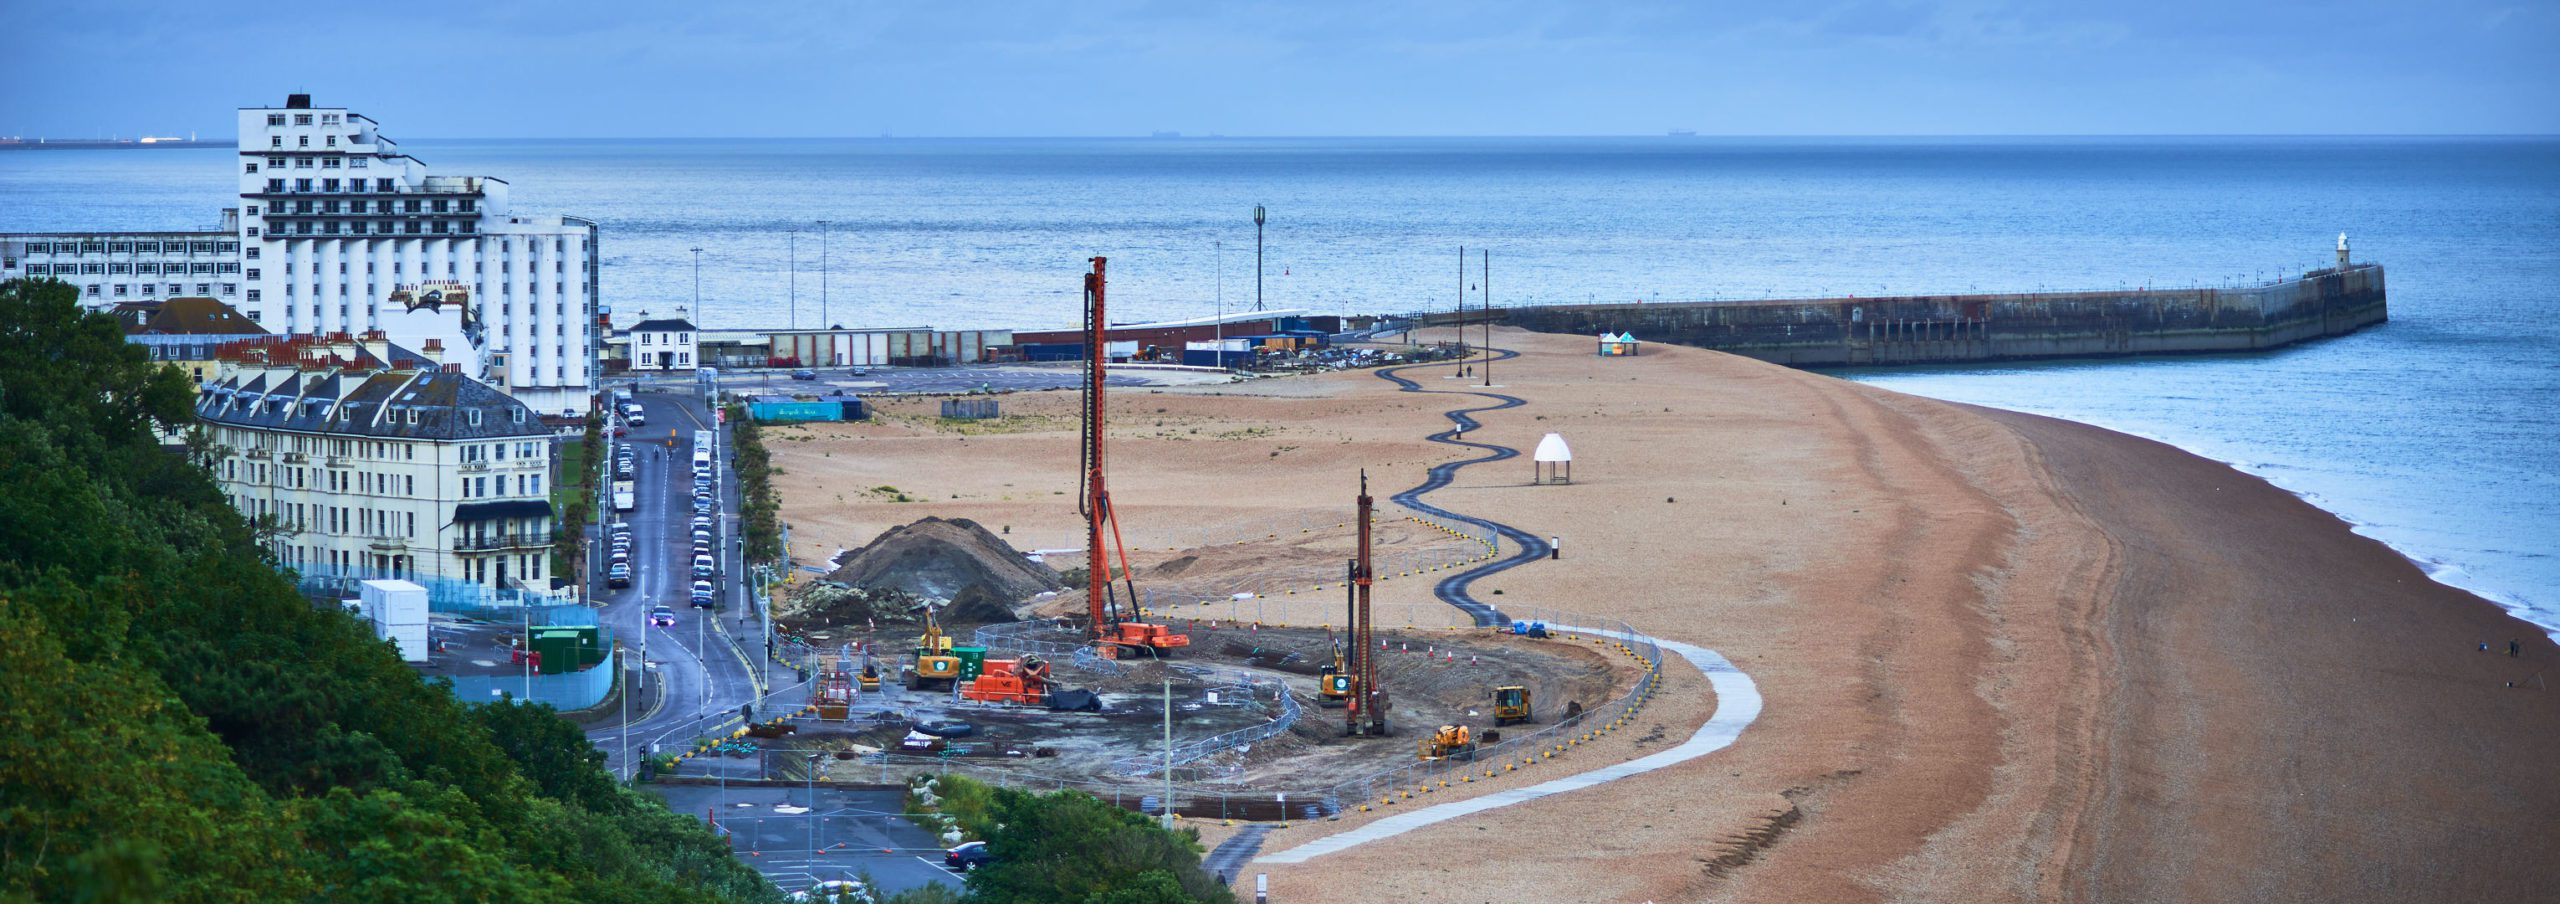 Folkestone Harbour Seafront Development June 2020